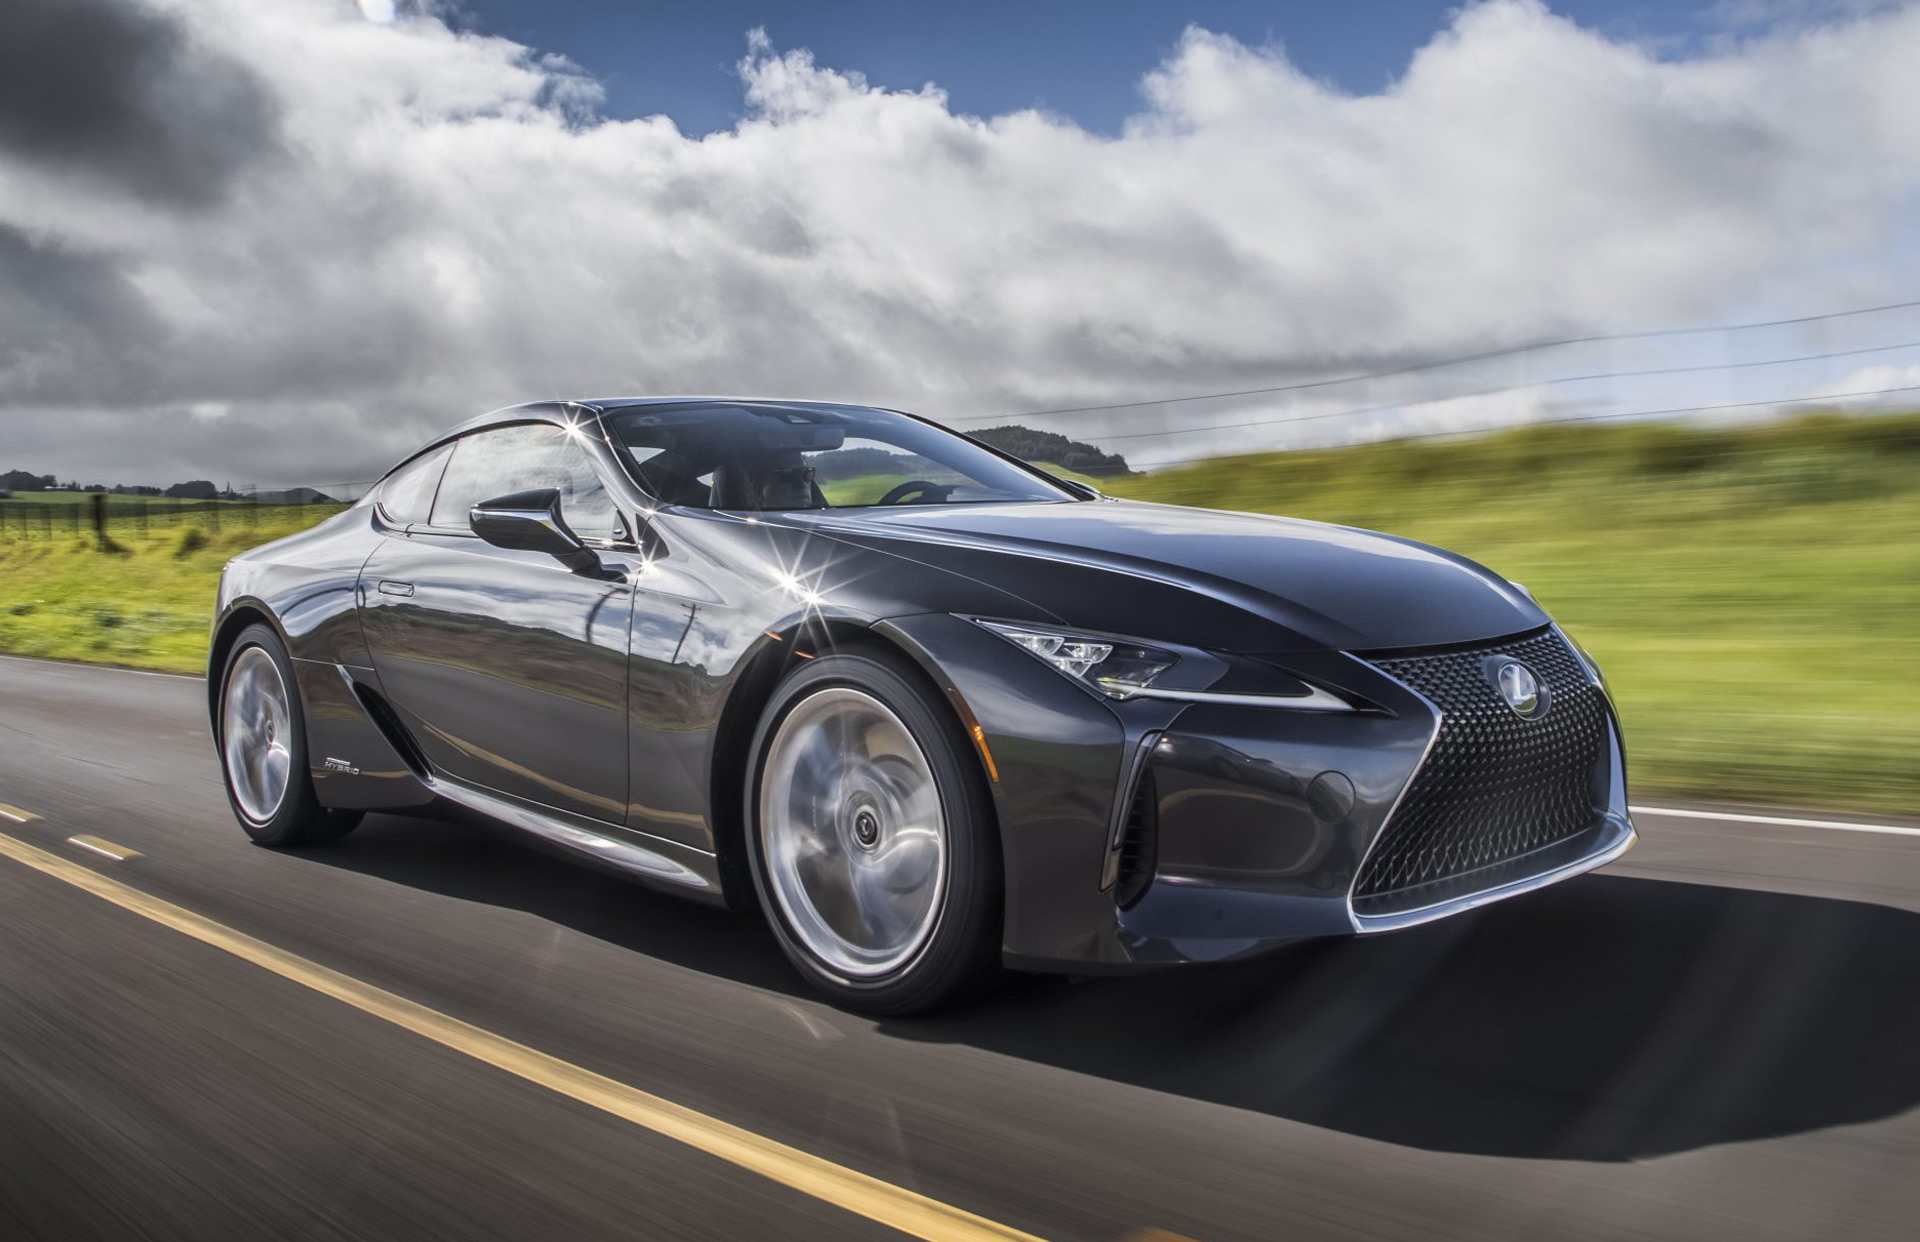 MUSCLE CAR COLLECTION : 2019 Lexus LC-F Starting Price of